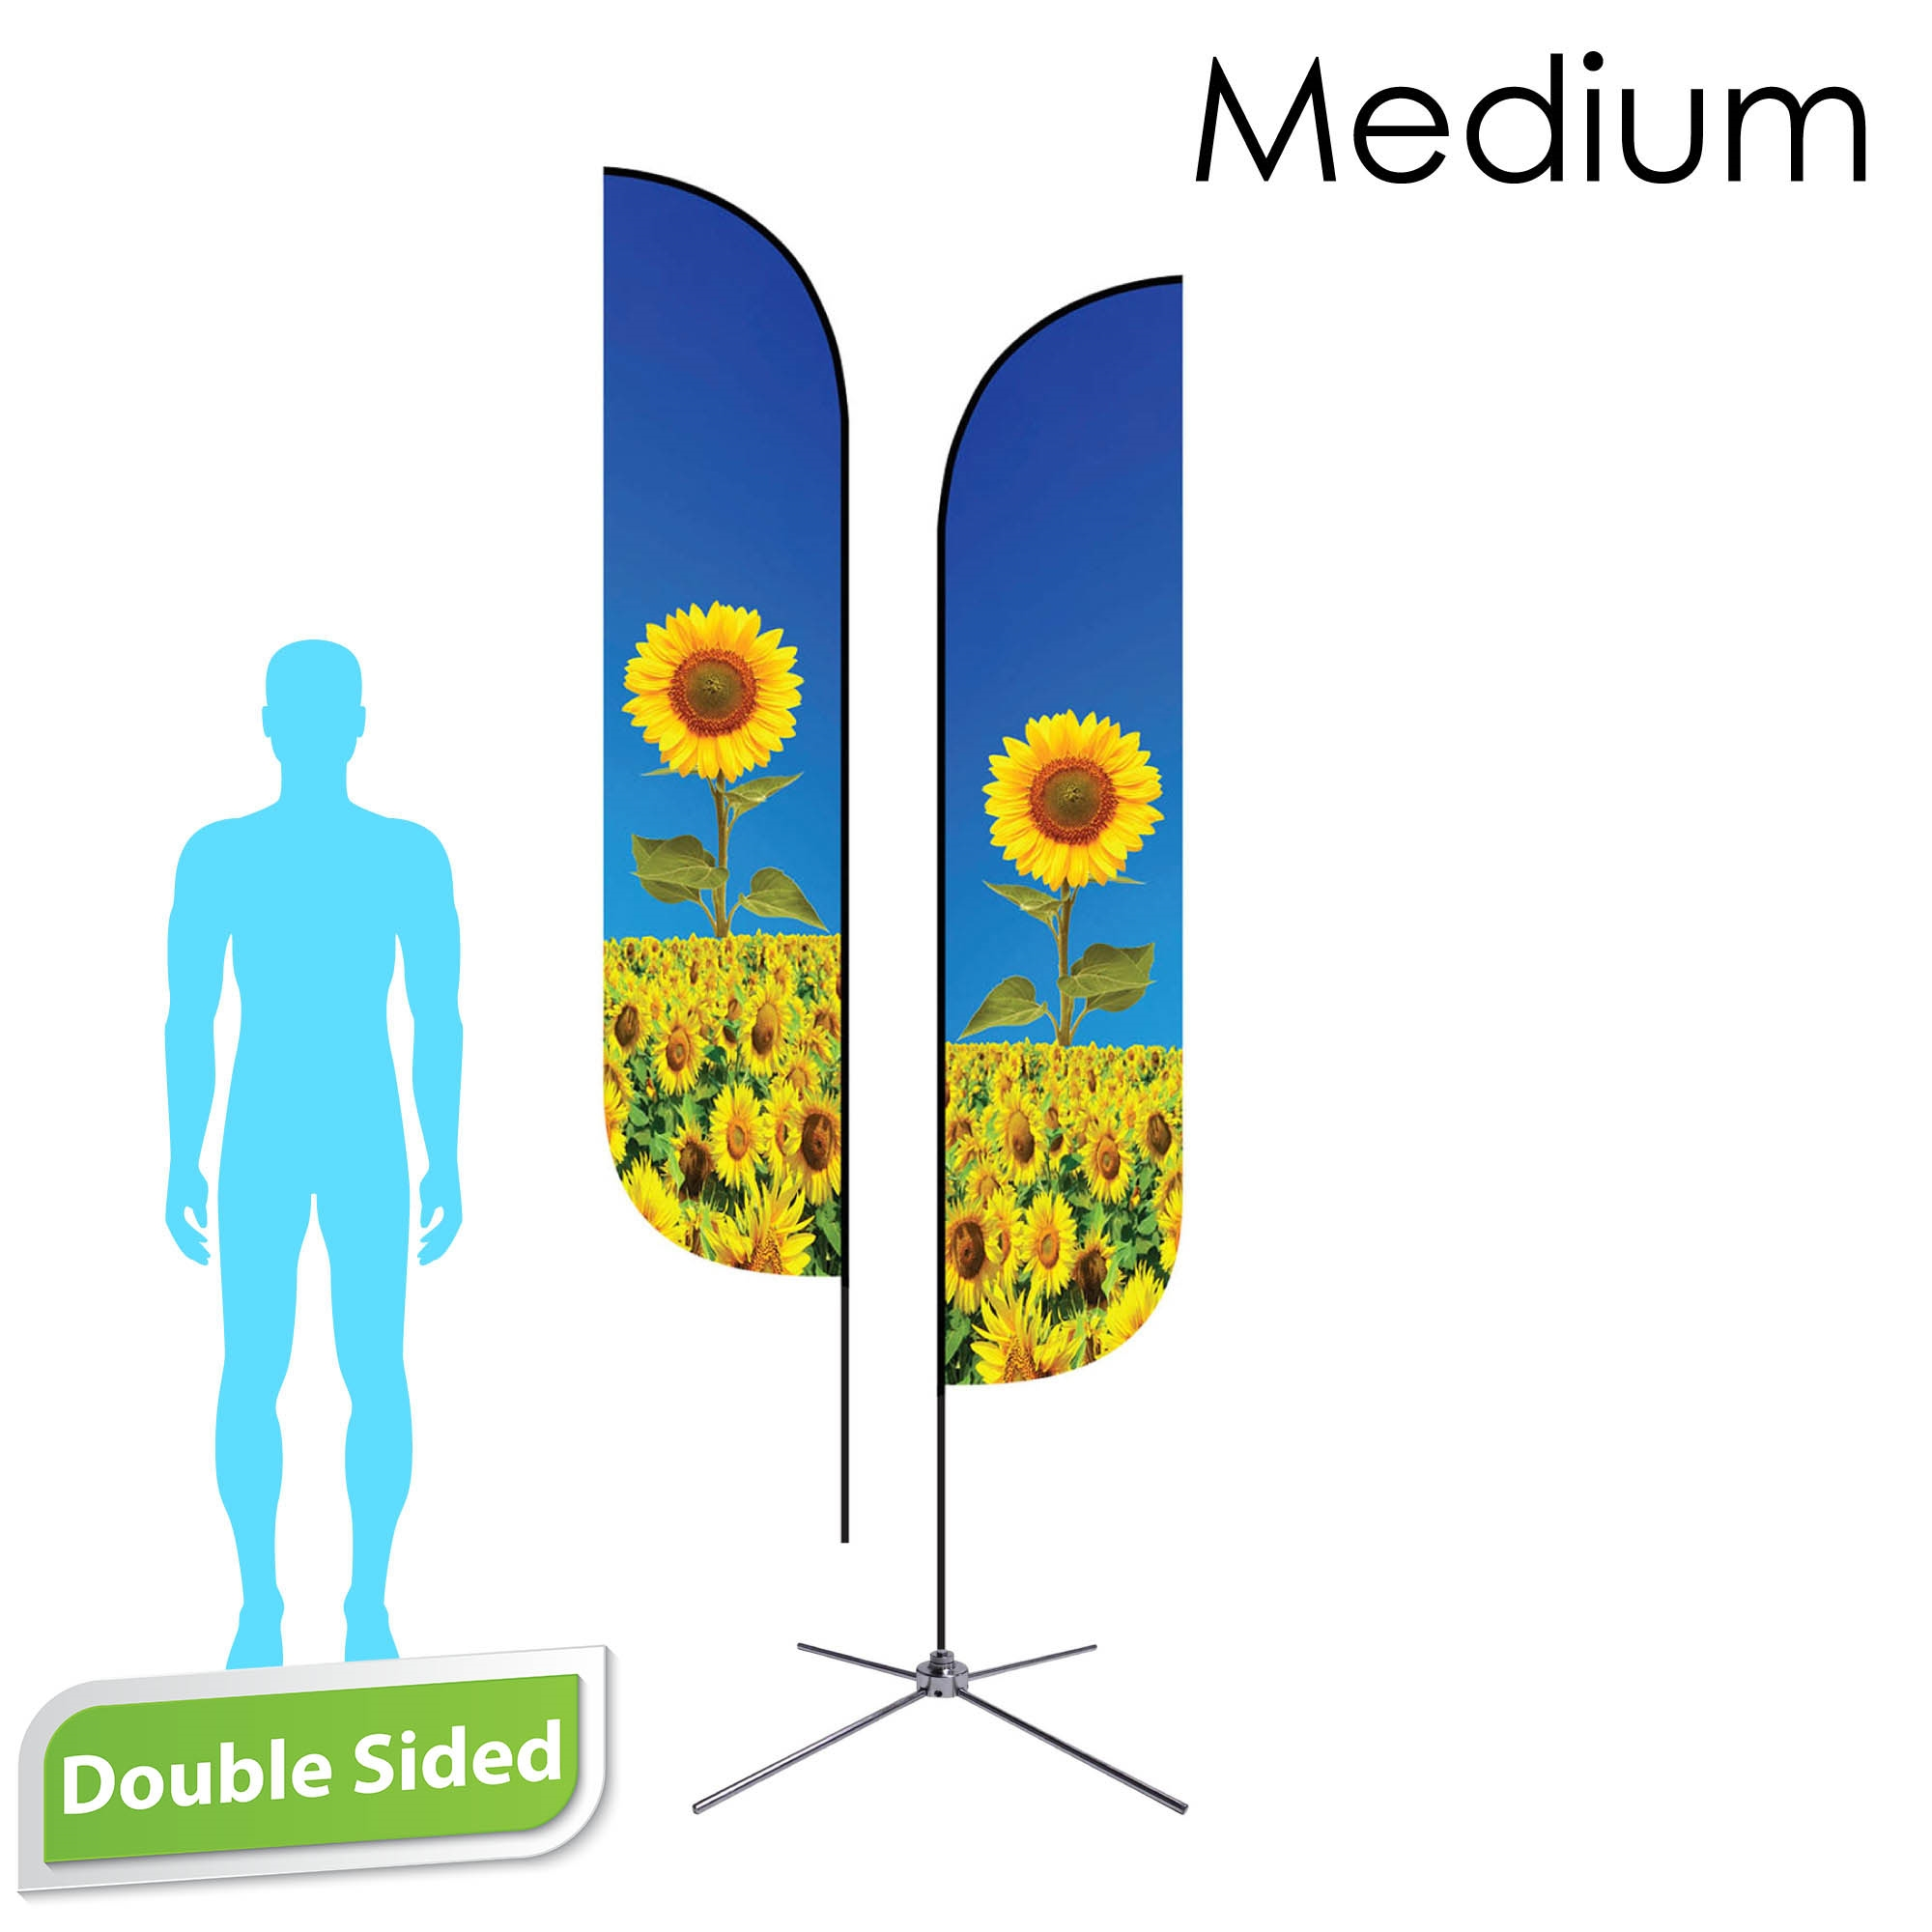 Feather Flag 10' Premium Double-Sided With Chrome X Base & Carry Bag (Medium)